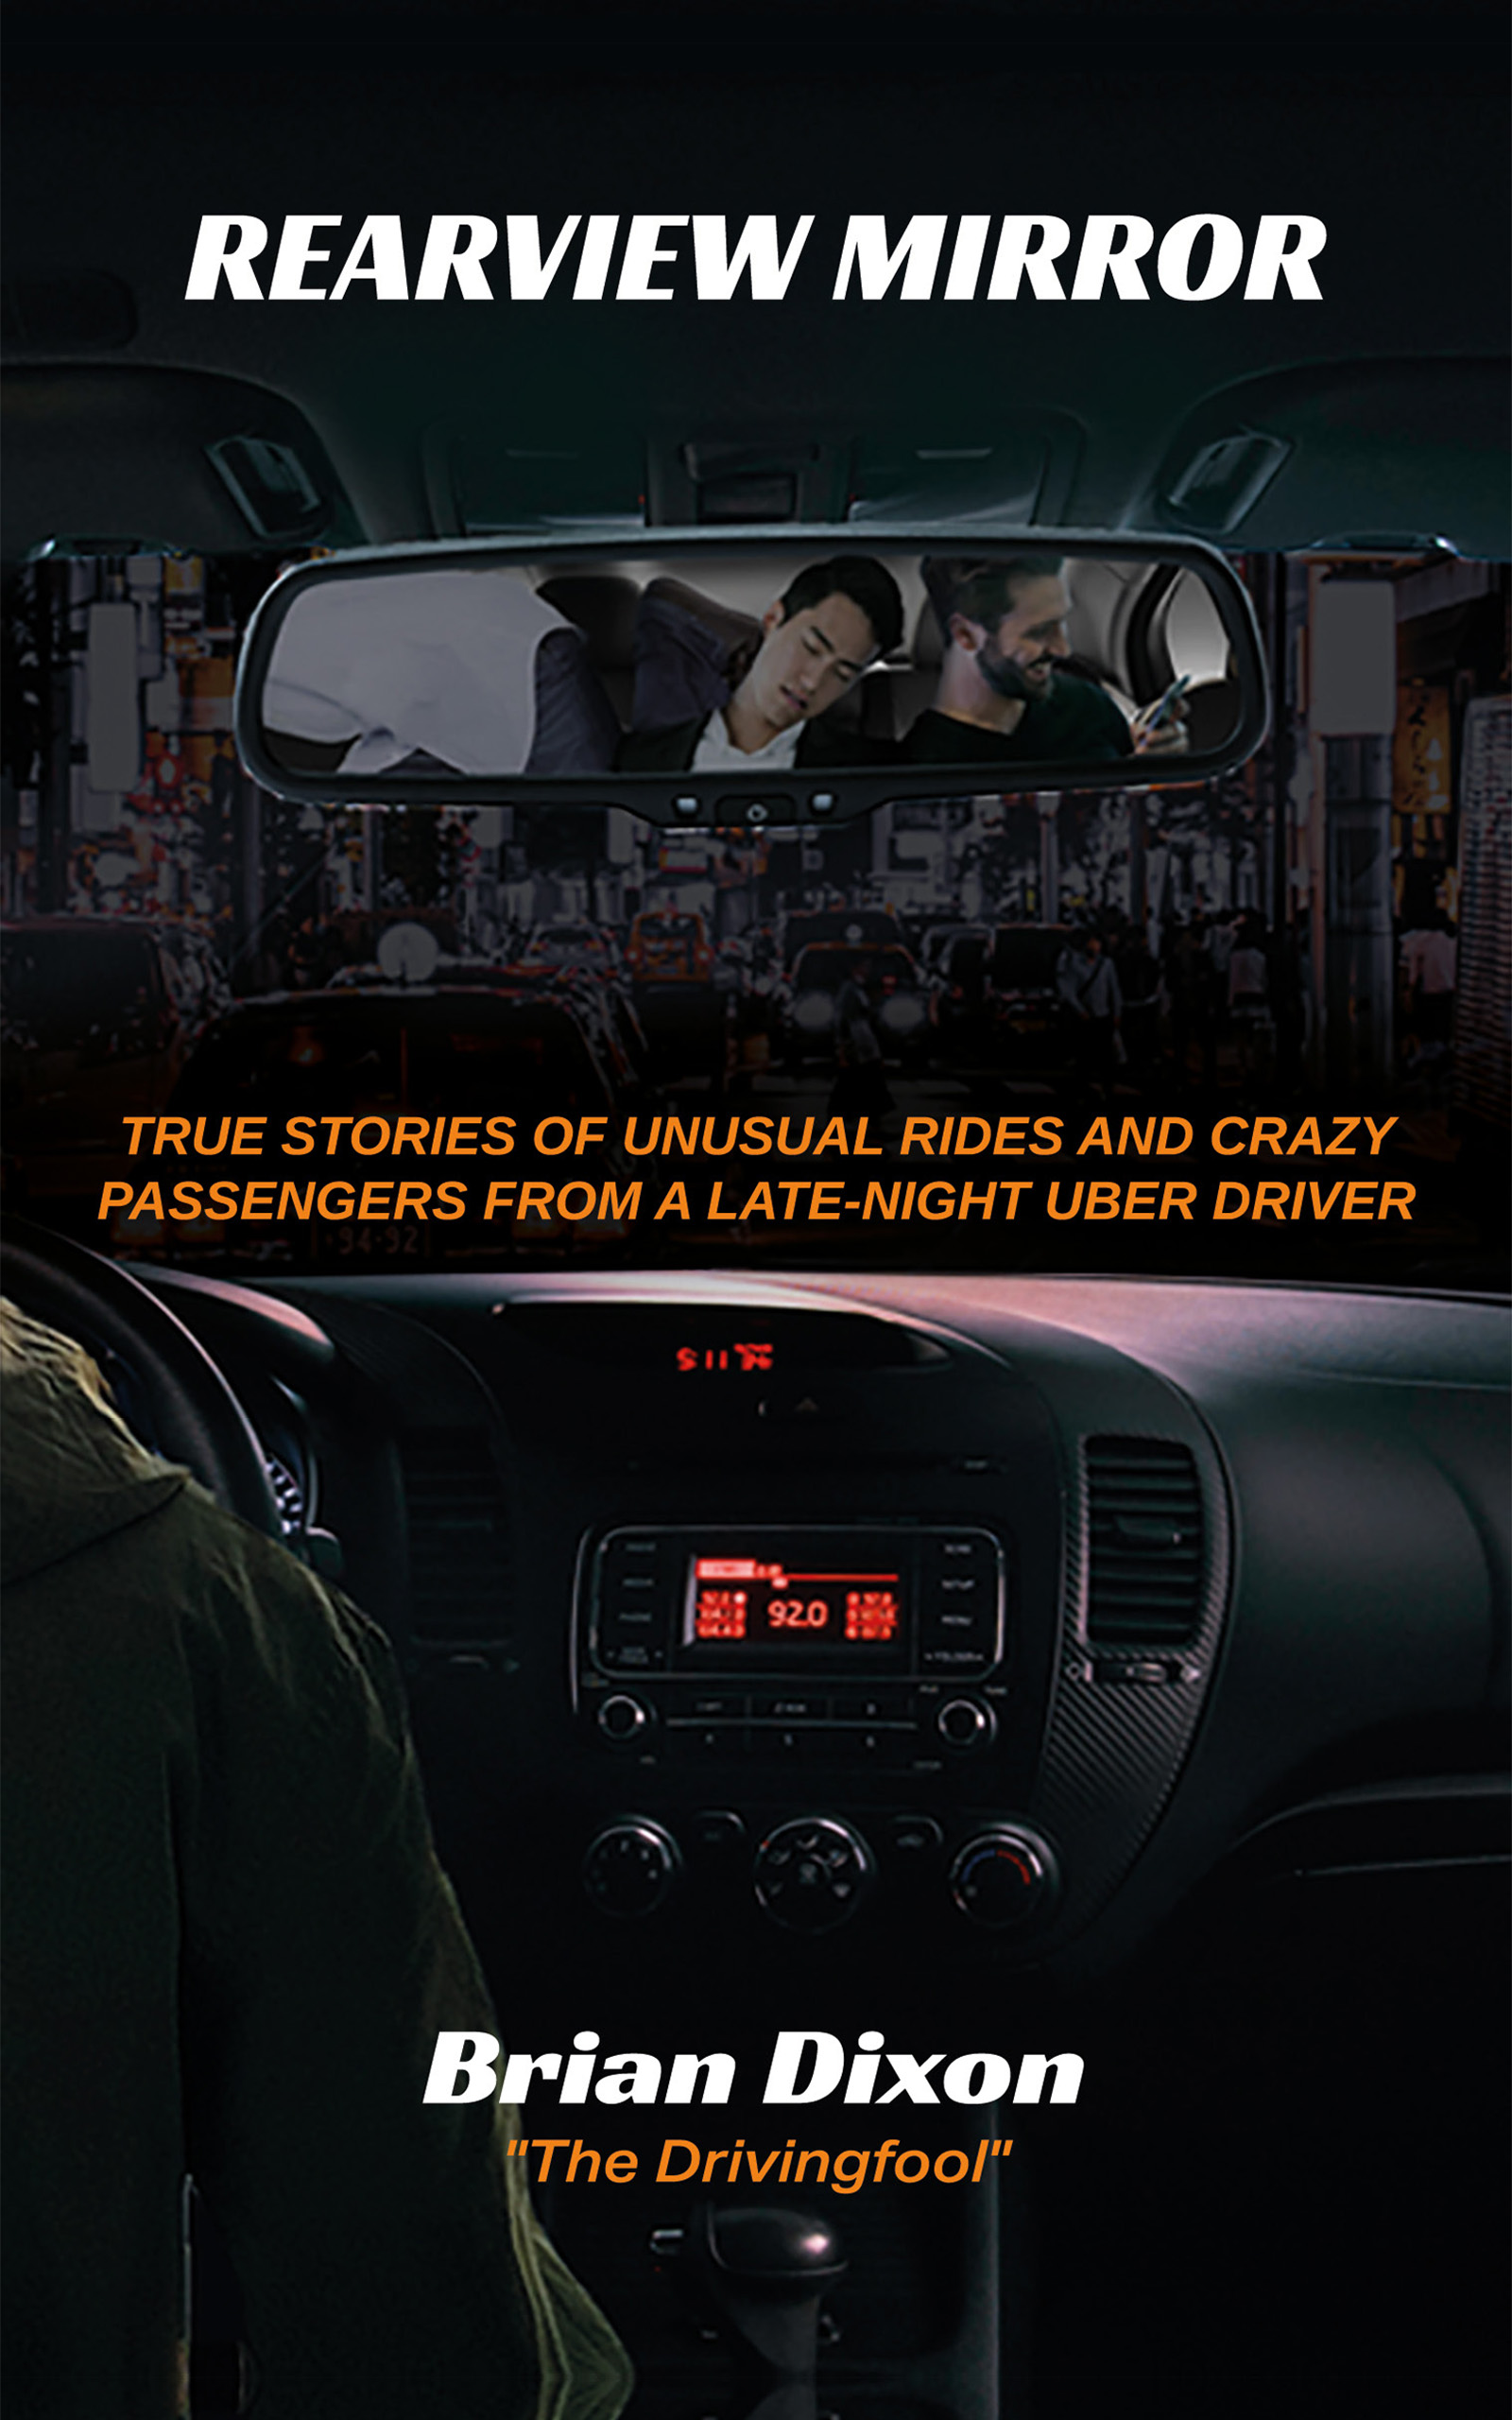 Rearview Mirrror: True Stories of Unusual Rides and Crazy Passengers From a Late-Night Uber Driver, Brian Dixon